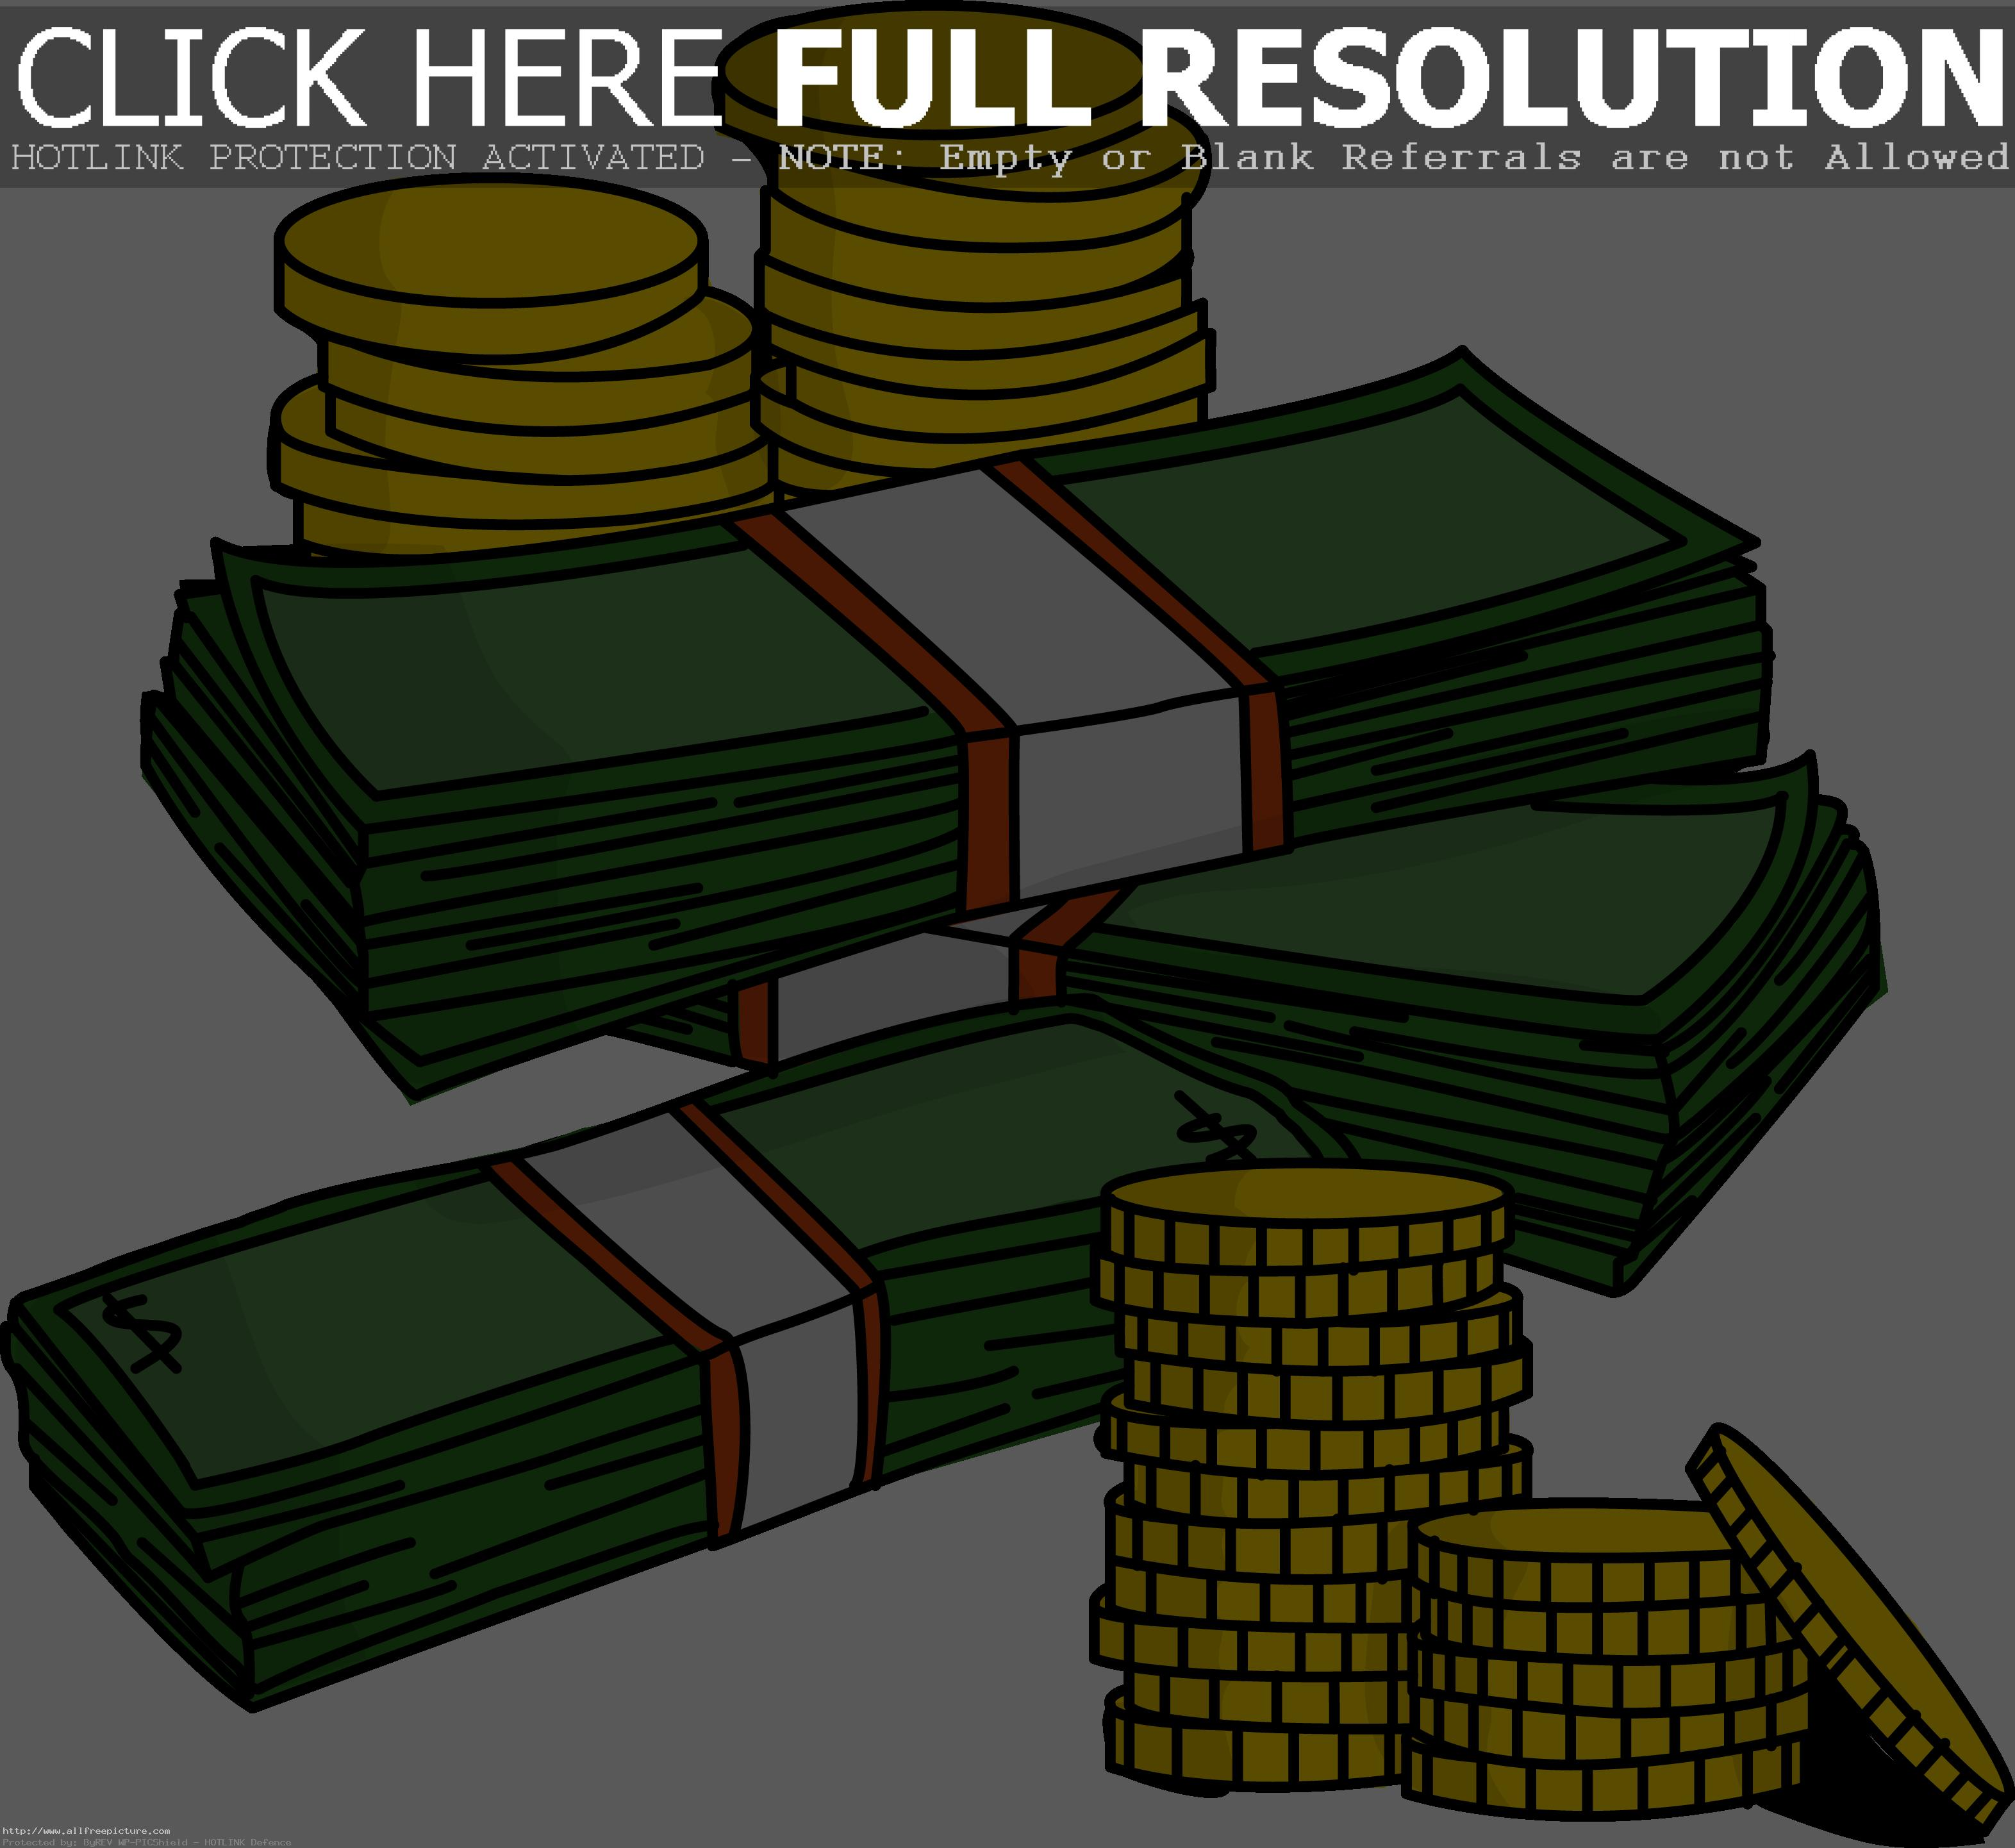 Pictures Of Money Clip Art - Cullen Coll-Pictures of money clip art - cullen collopy photos-15